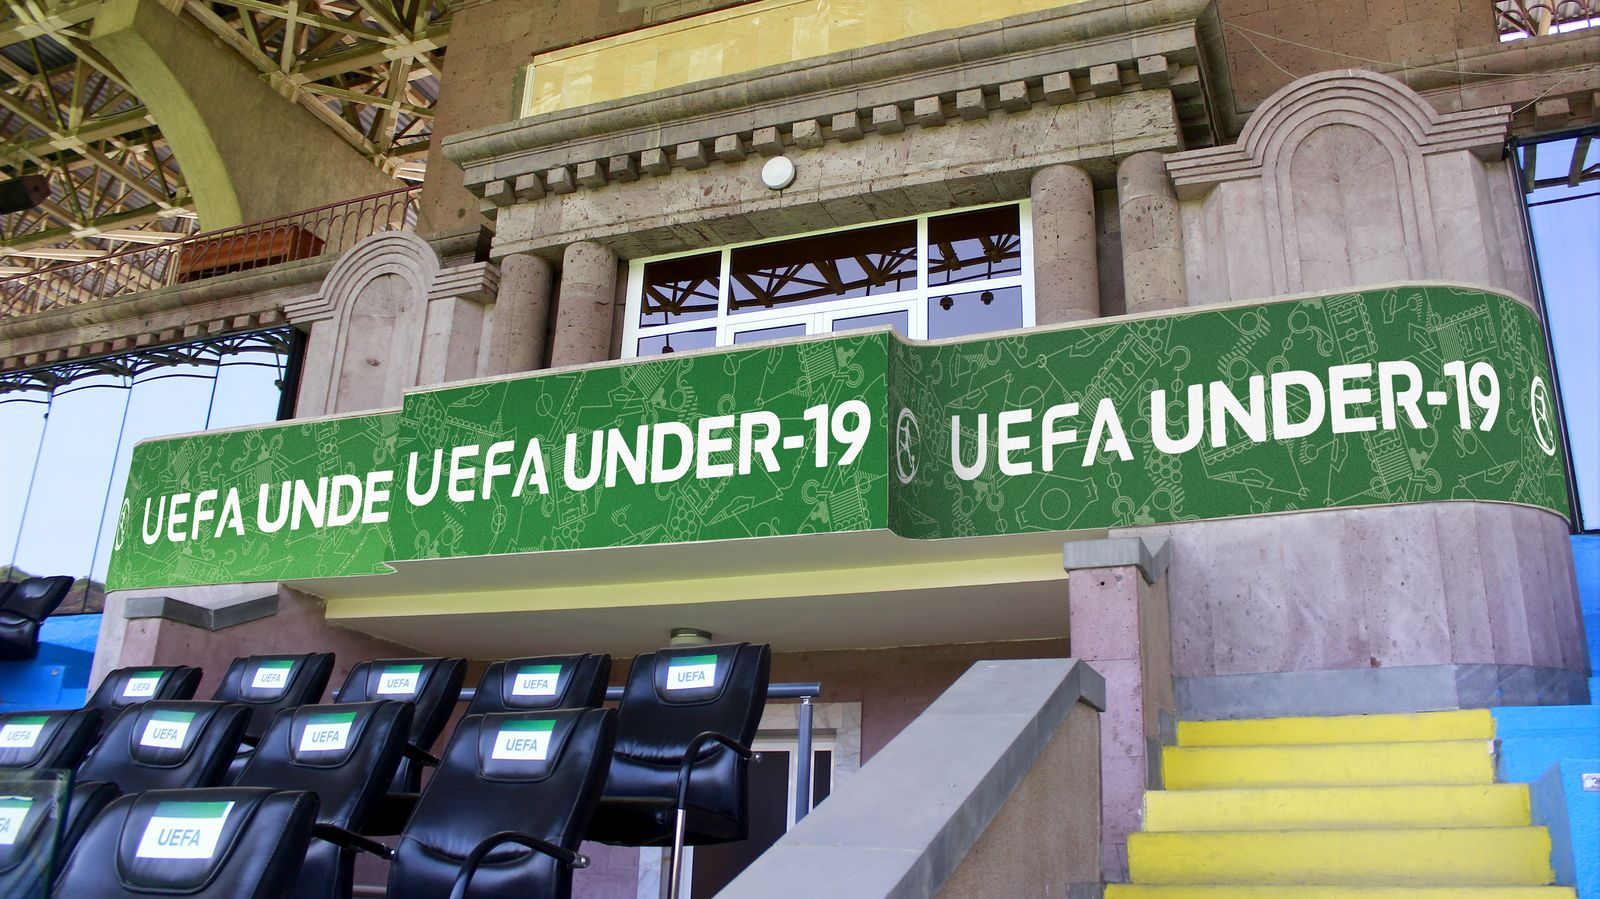 Uefa soccer stadium sign